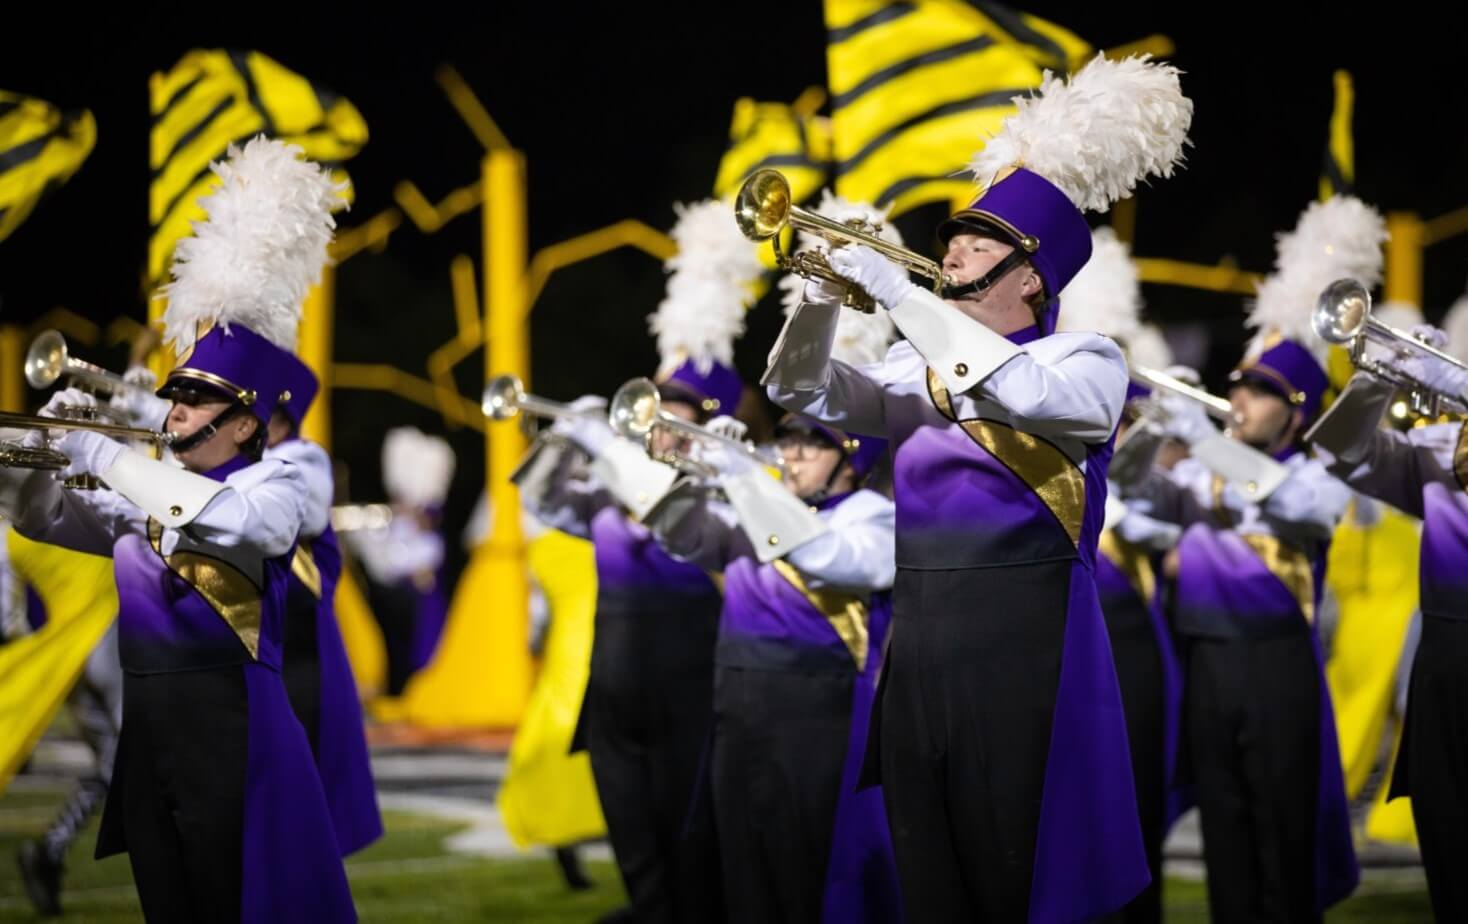 FROM CHESCO: WCU's Marching Band Earns 'Heisman Trophy of the Collegiate Band World'